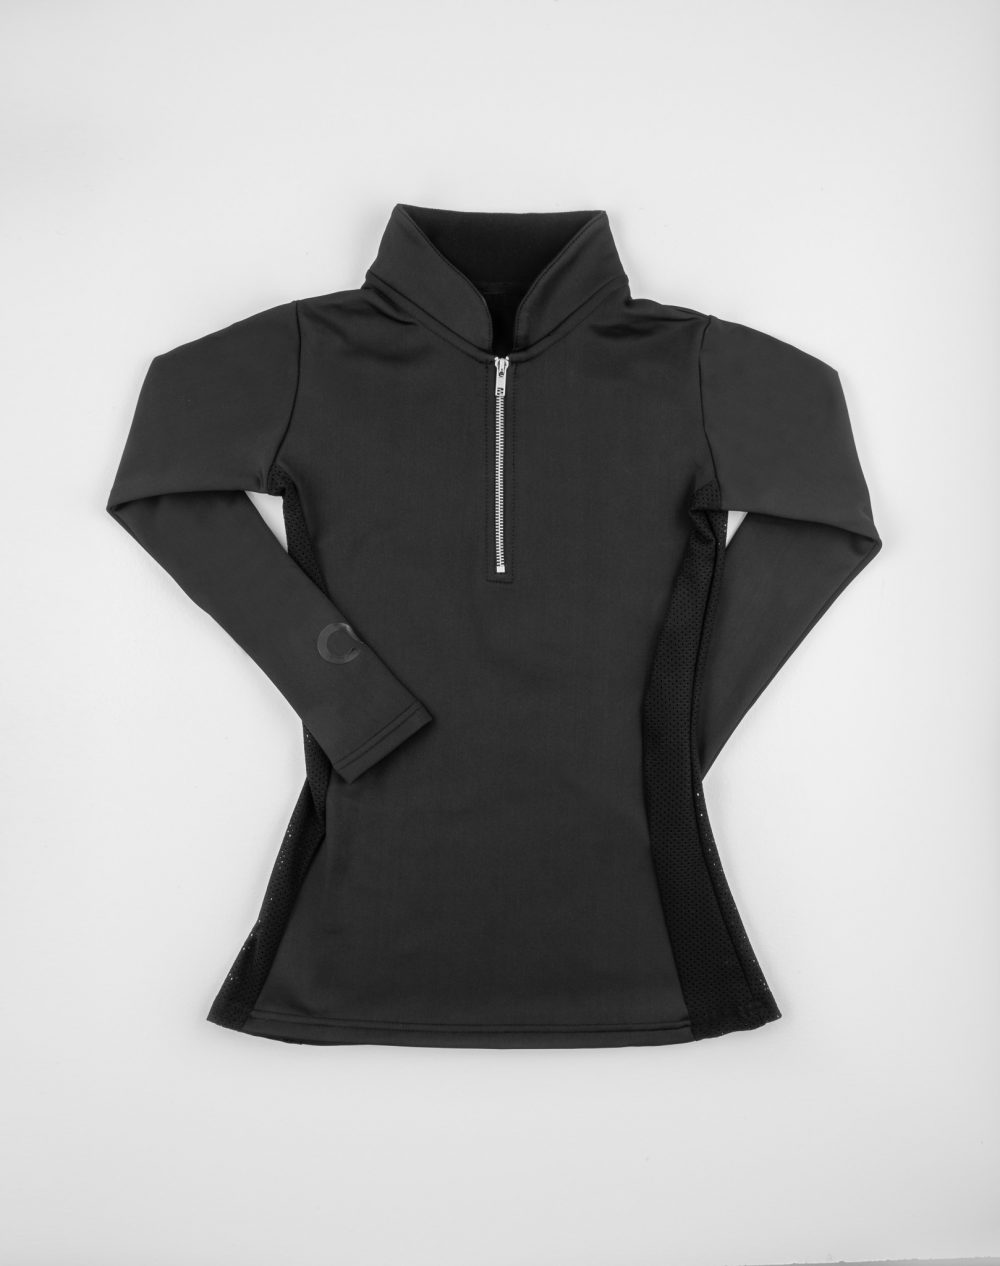 American Equus Technical Rider Wear - Black Label Base Layer Top